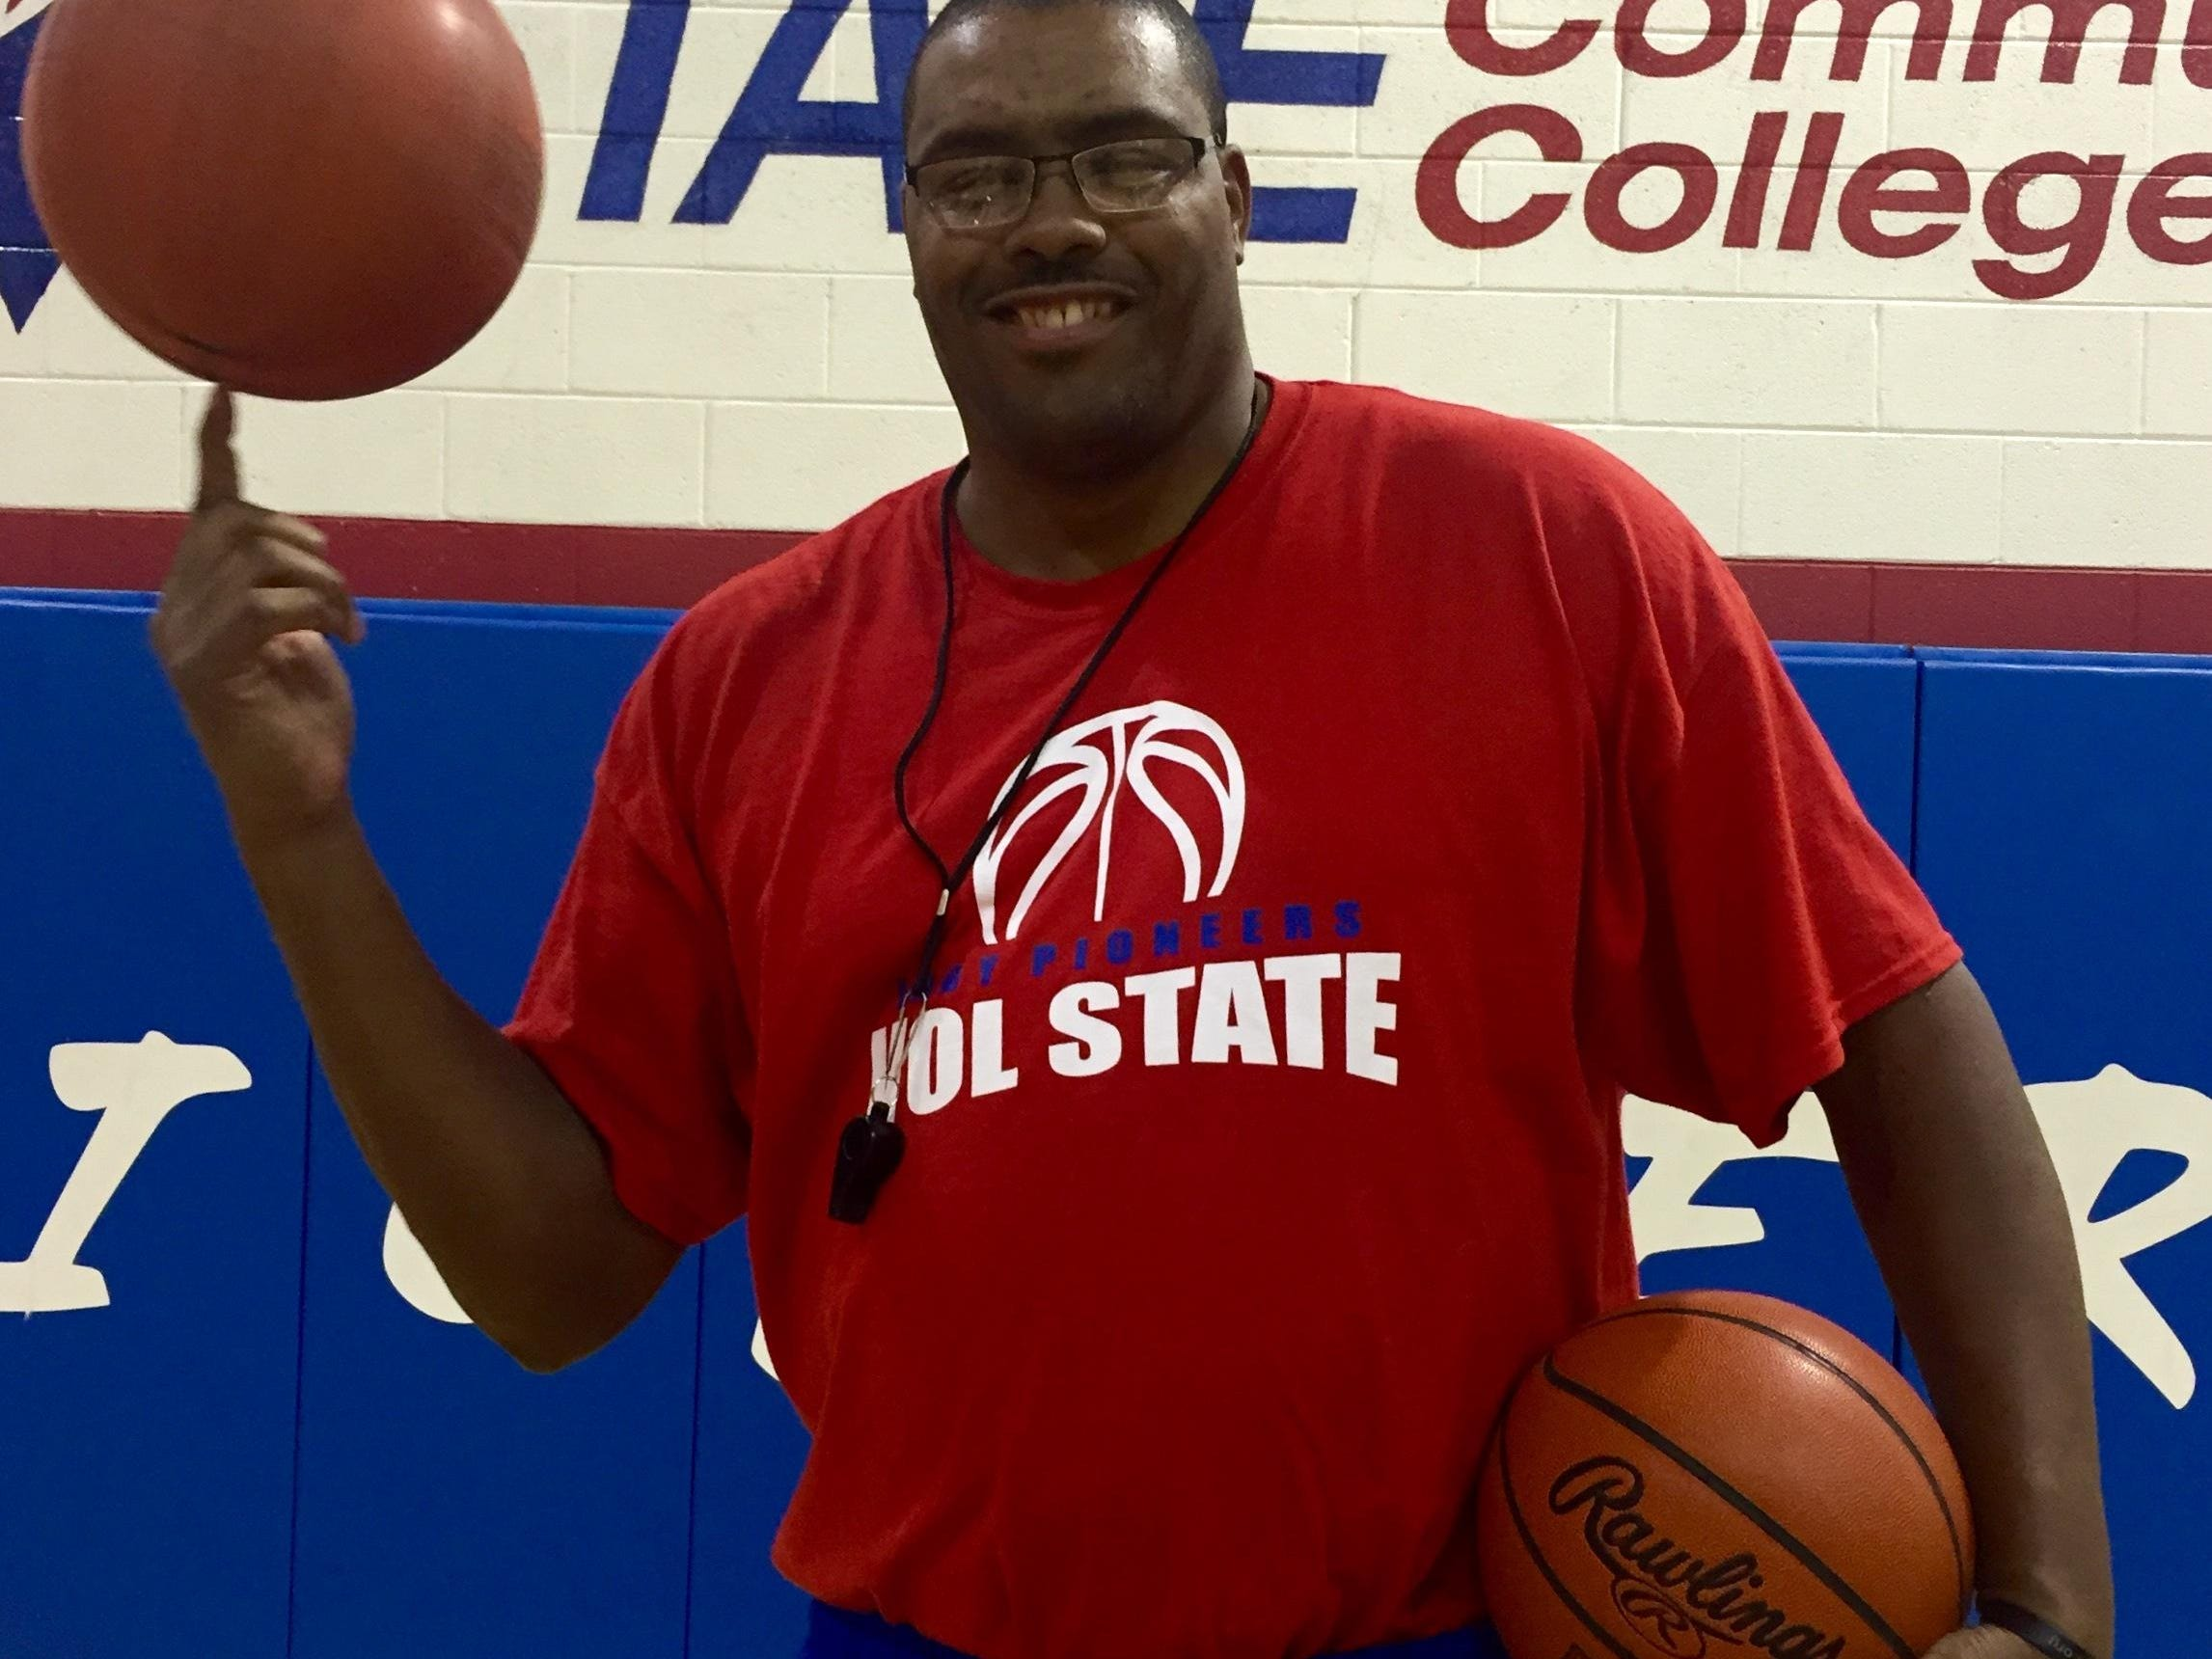 Otis Key is in his second year at Volunteer State after spending 10 years with the Globetrotters.